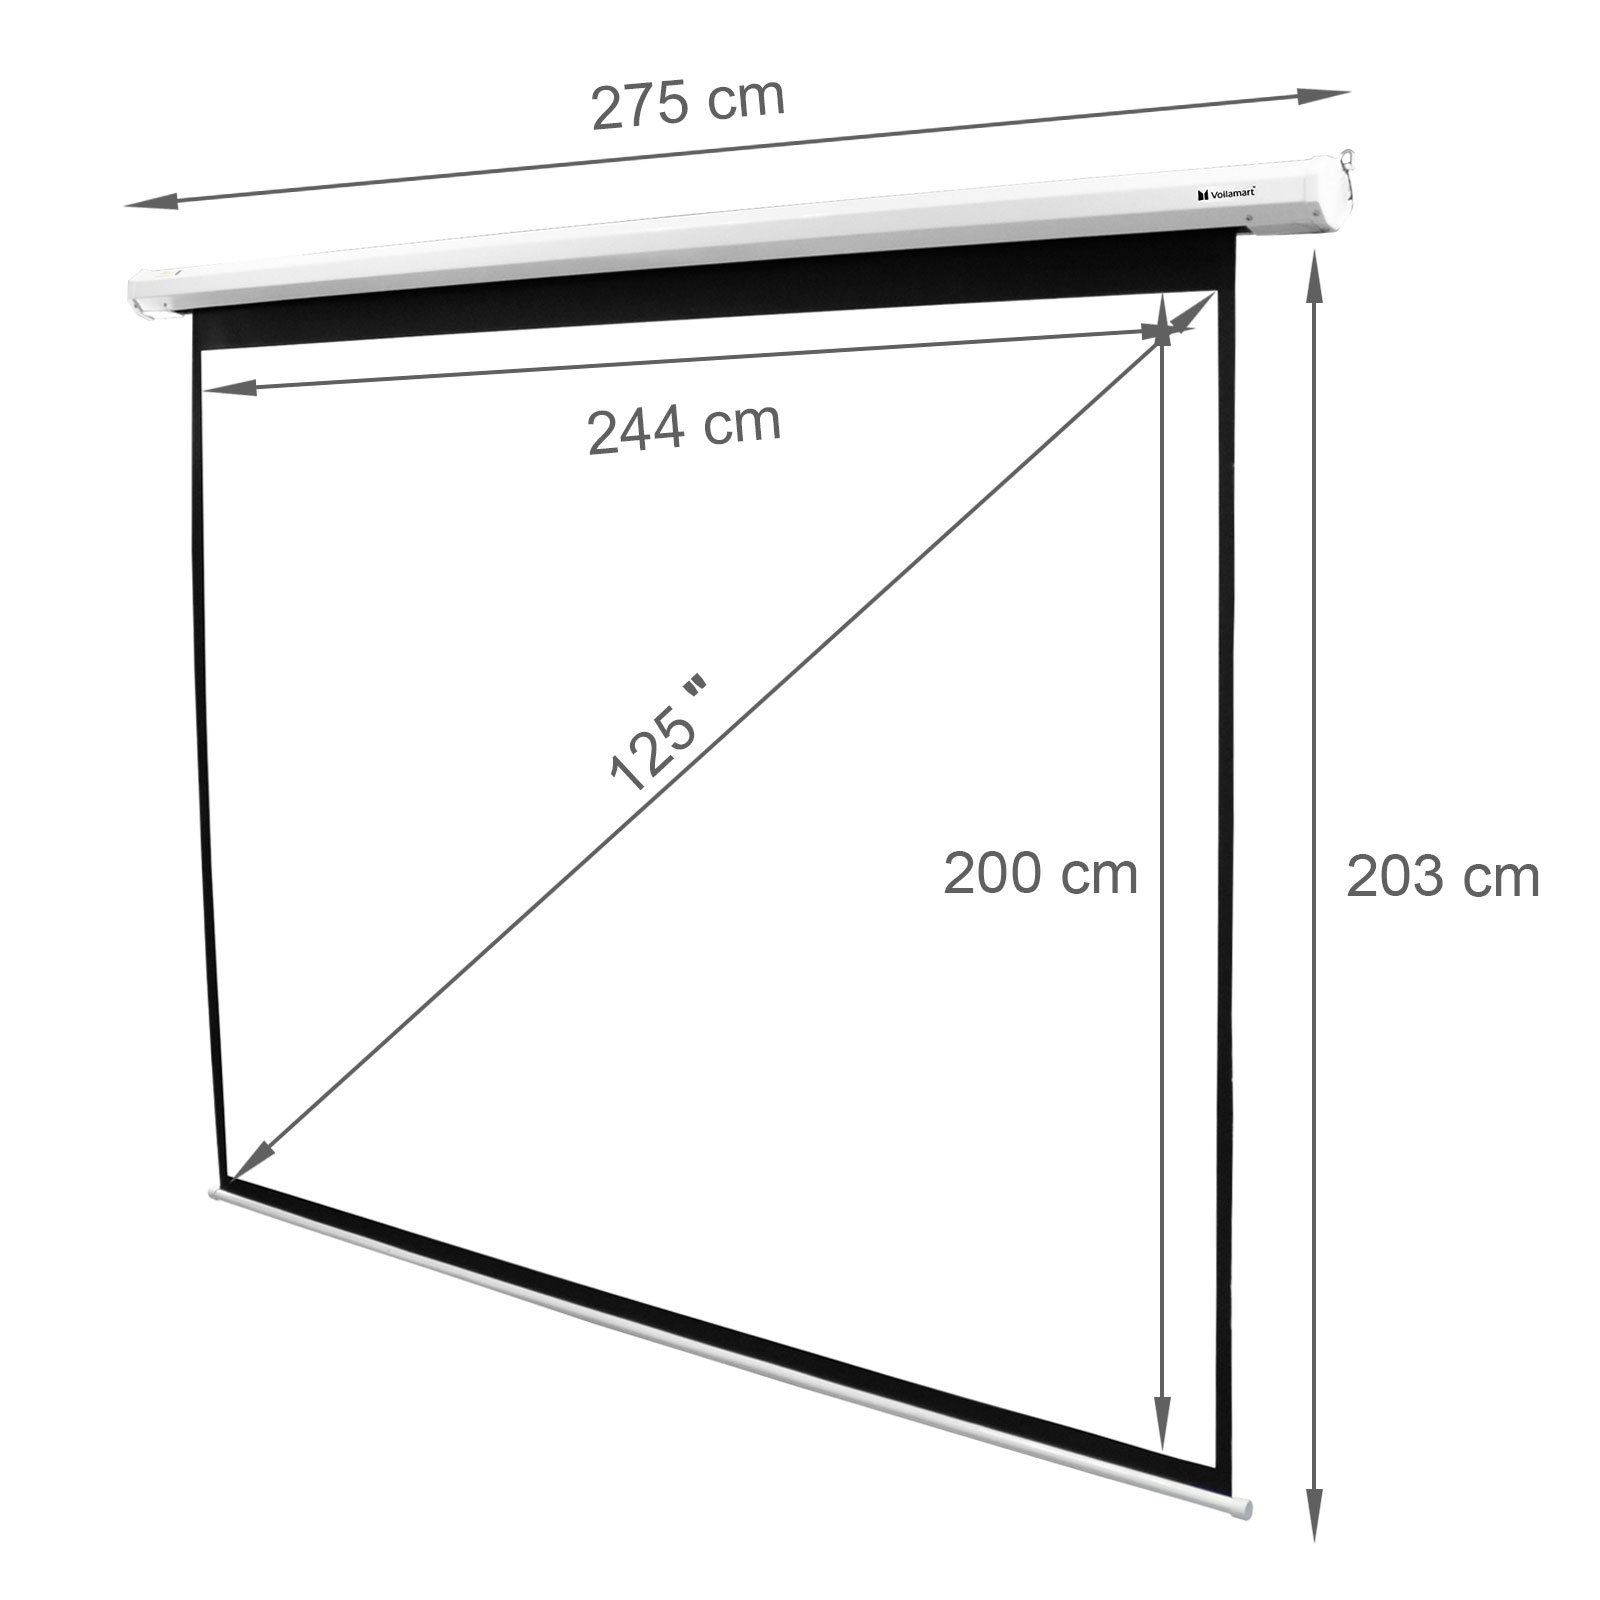 125 inch projector screen home theatre hd tv electric for 130 inch motorized projector screen